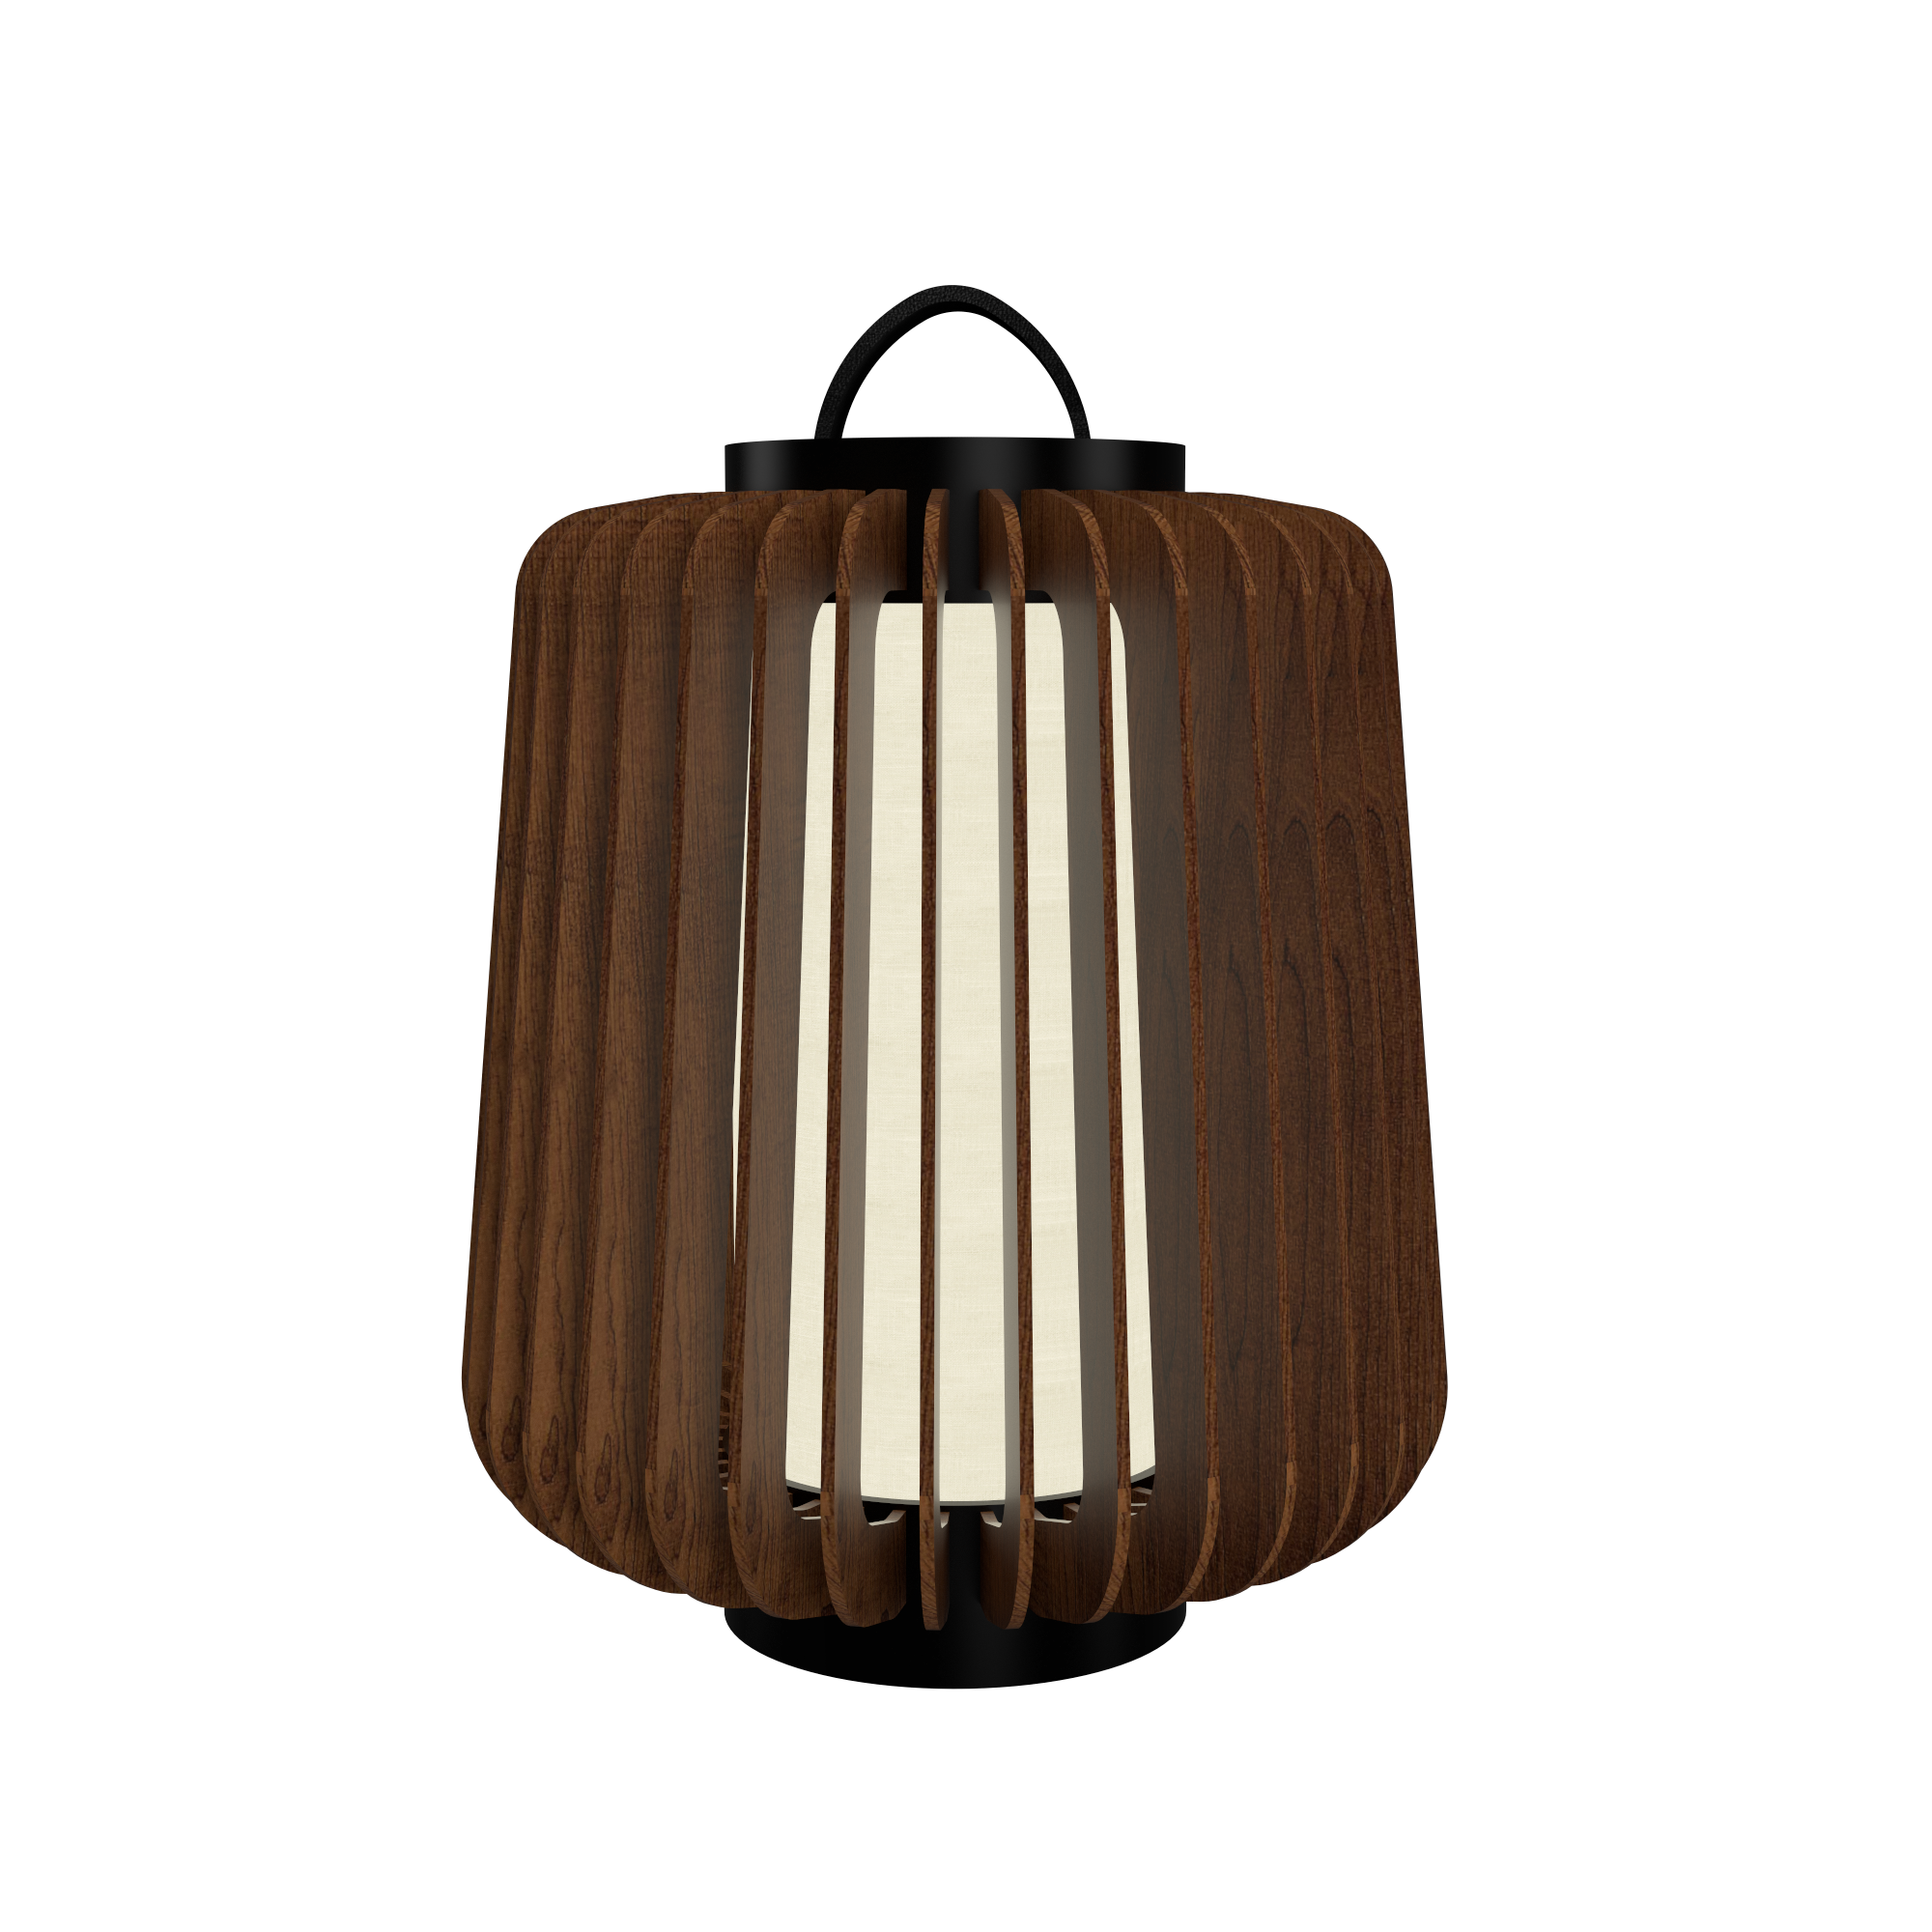 Floor Lamp Accord Stecche Di Legno 3035 - Stecche Di Legno Line Accord Lighting | 06. Imbuia